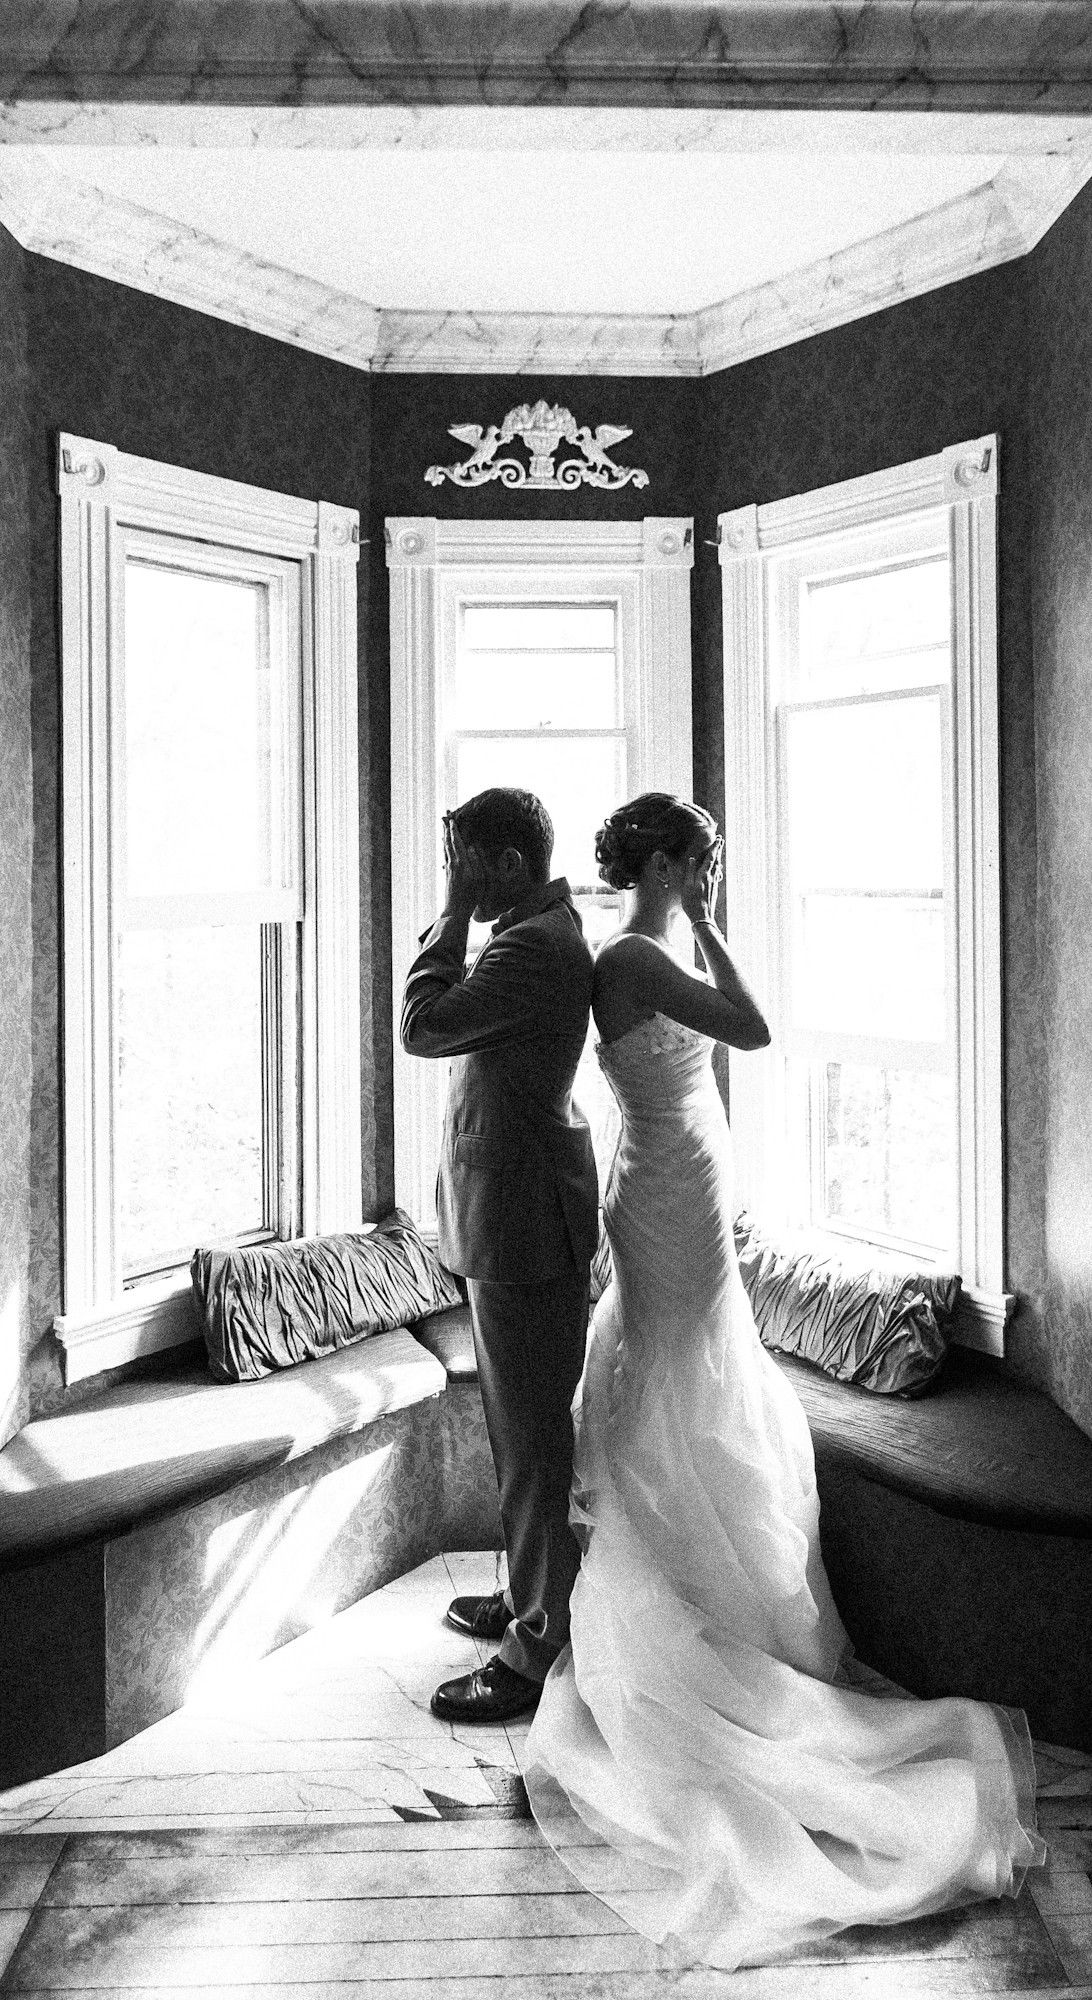 Wedding photographs - with a difference. cant see the bride before the wedding